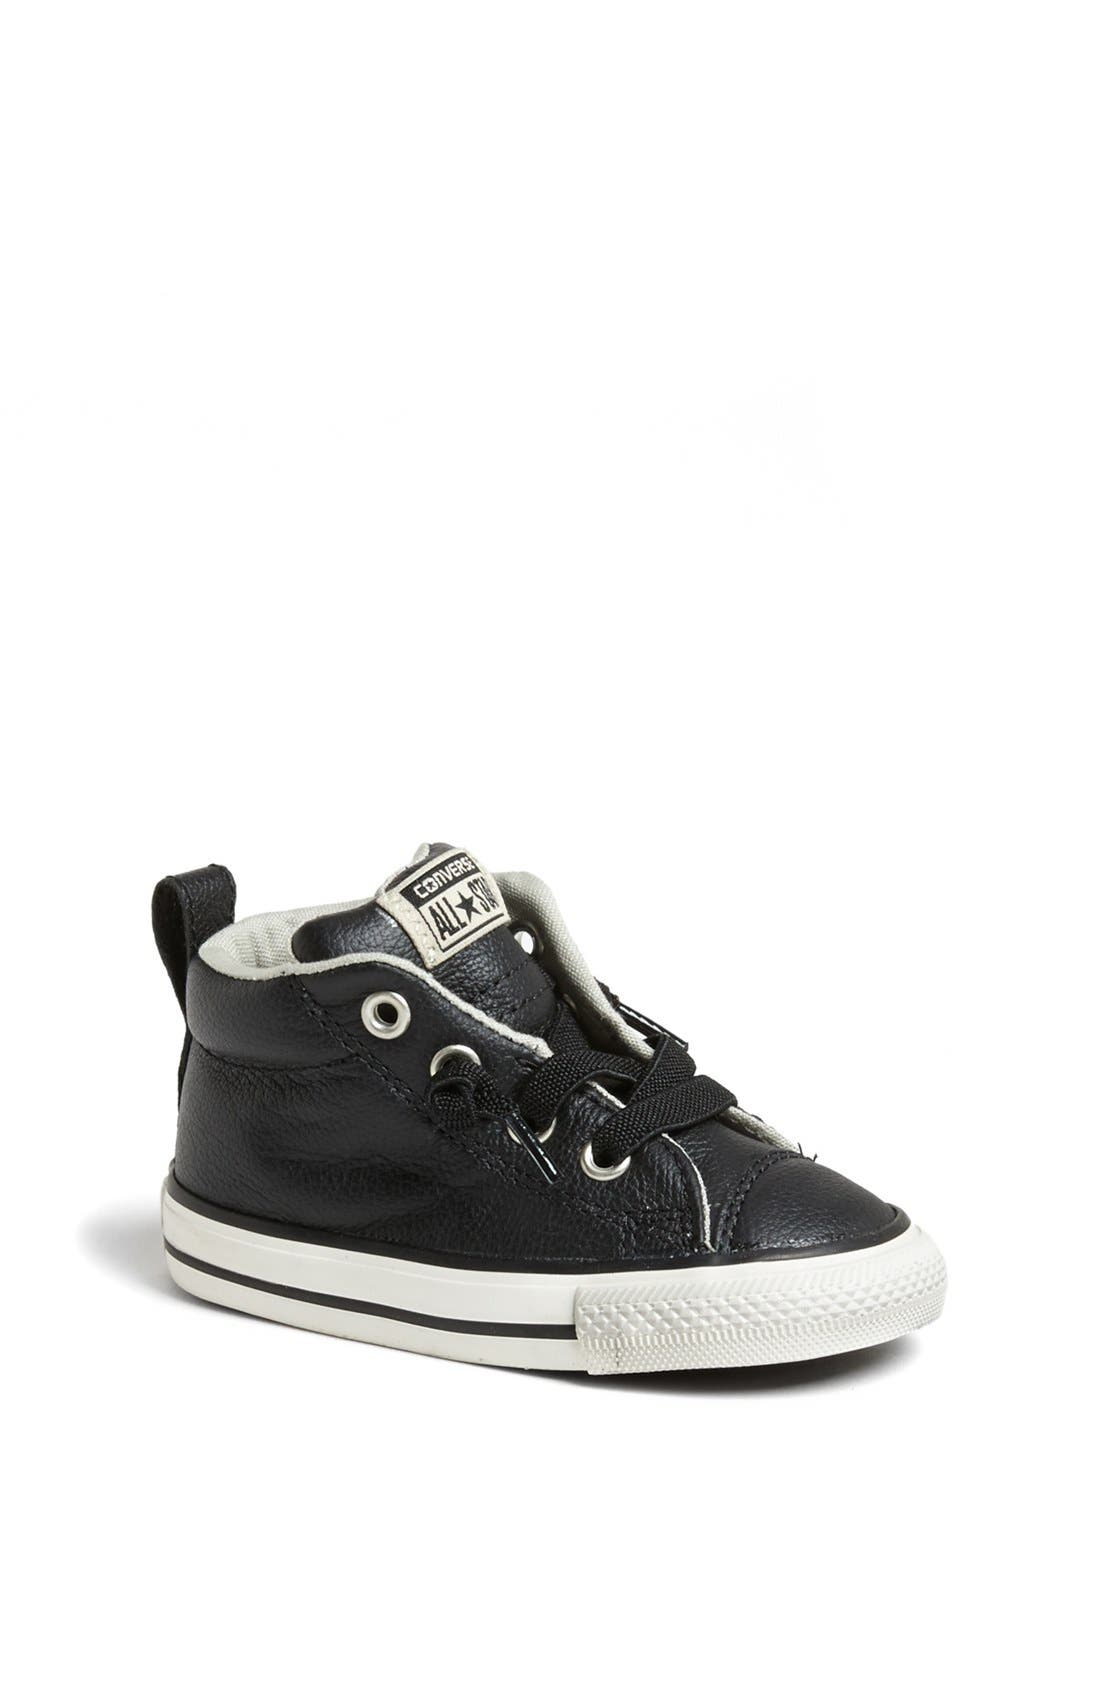 Alternate Image 1 Selected - Converse Chuck Taylor® All Star® 'CT AS Street' Leather Slip-On Sneaker (Baby, Walker & Toddler)